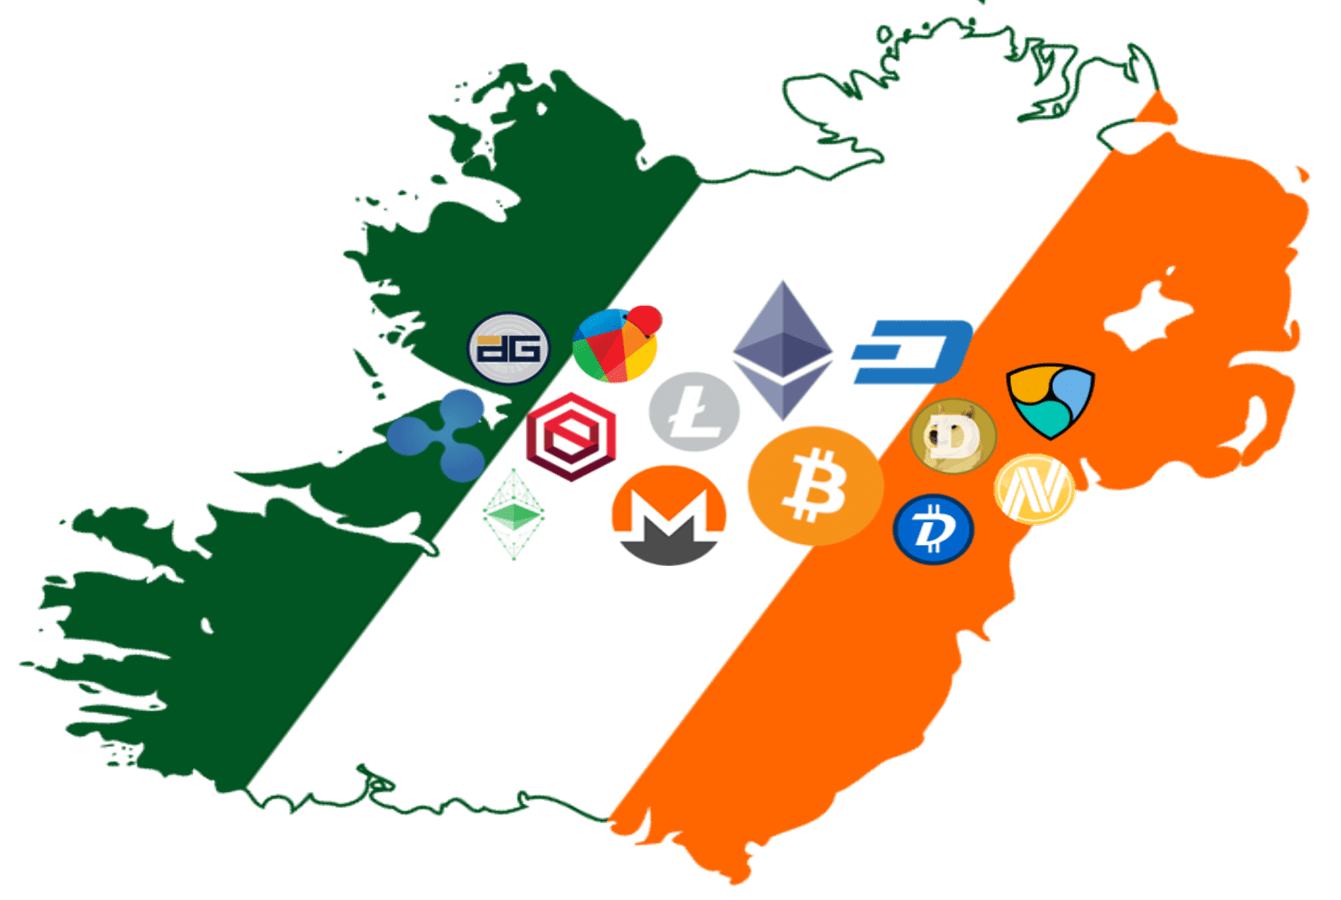 buy cryptocurrncy guide in Ireland